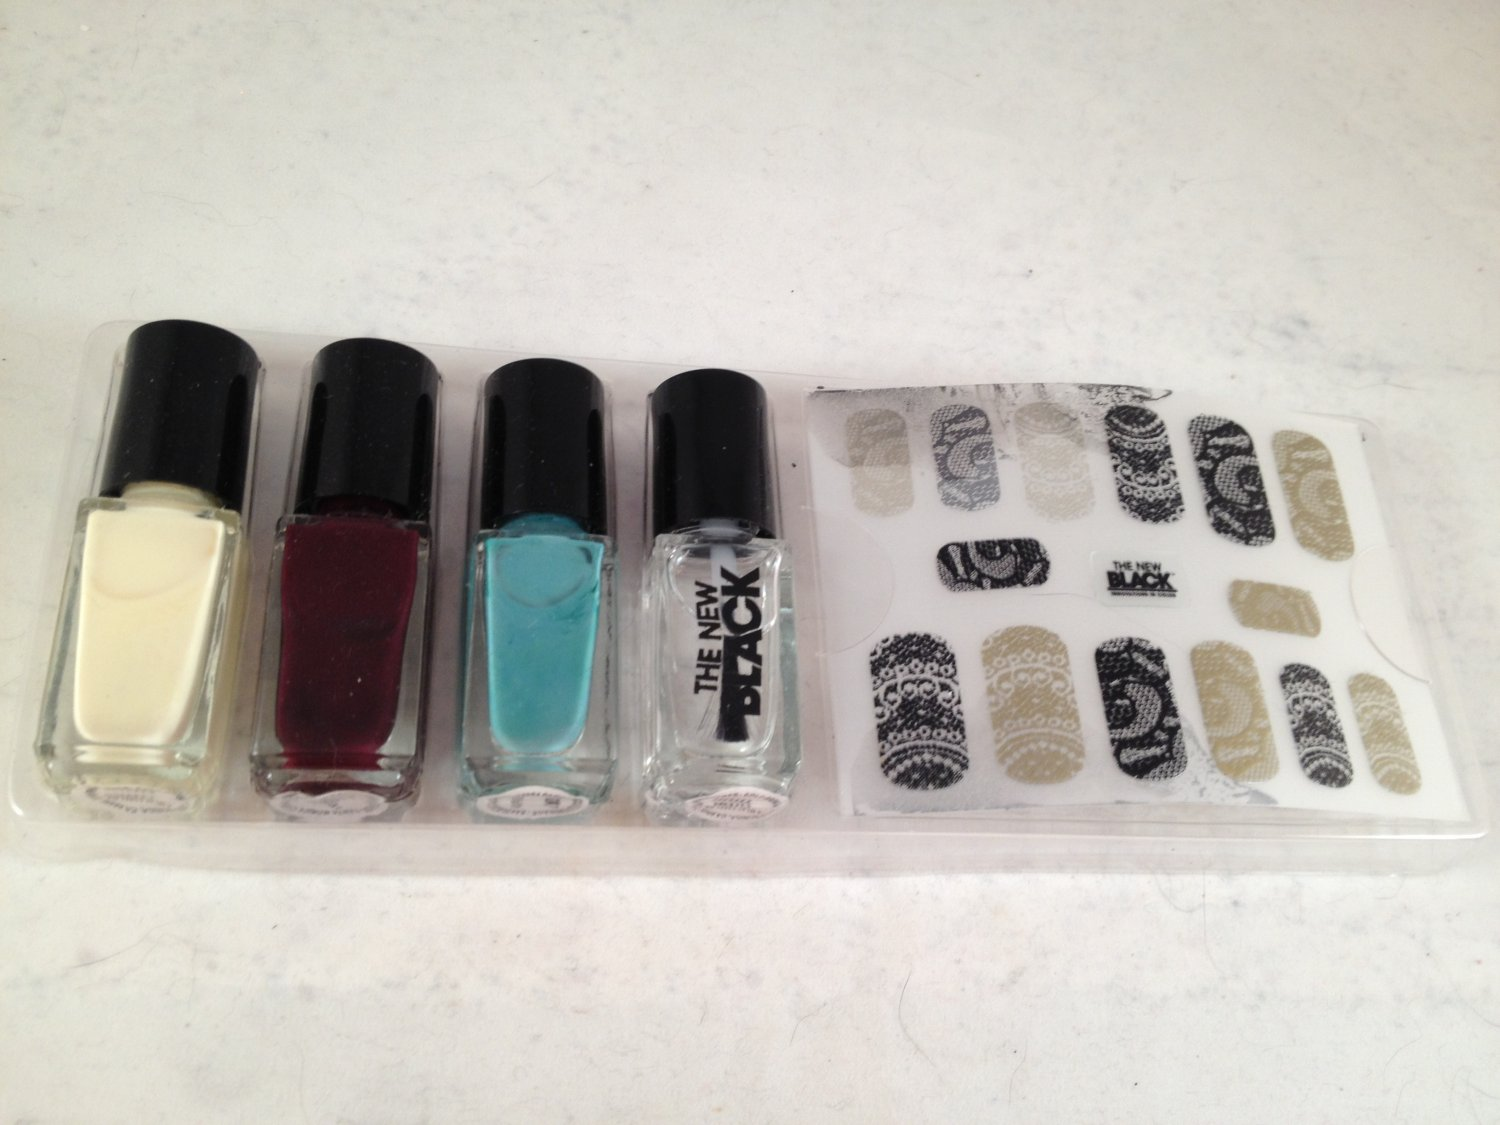 The New Black Lace the Punch Nail Polish and Strips lacquer color decals *damaged*